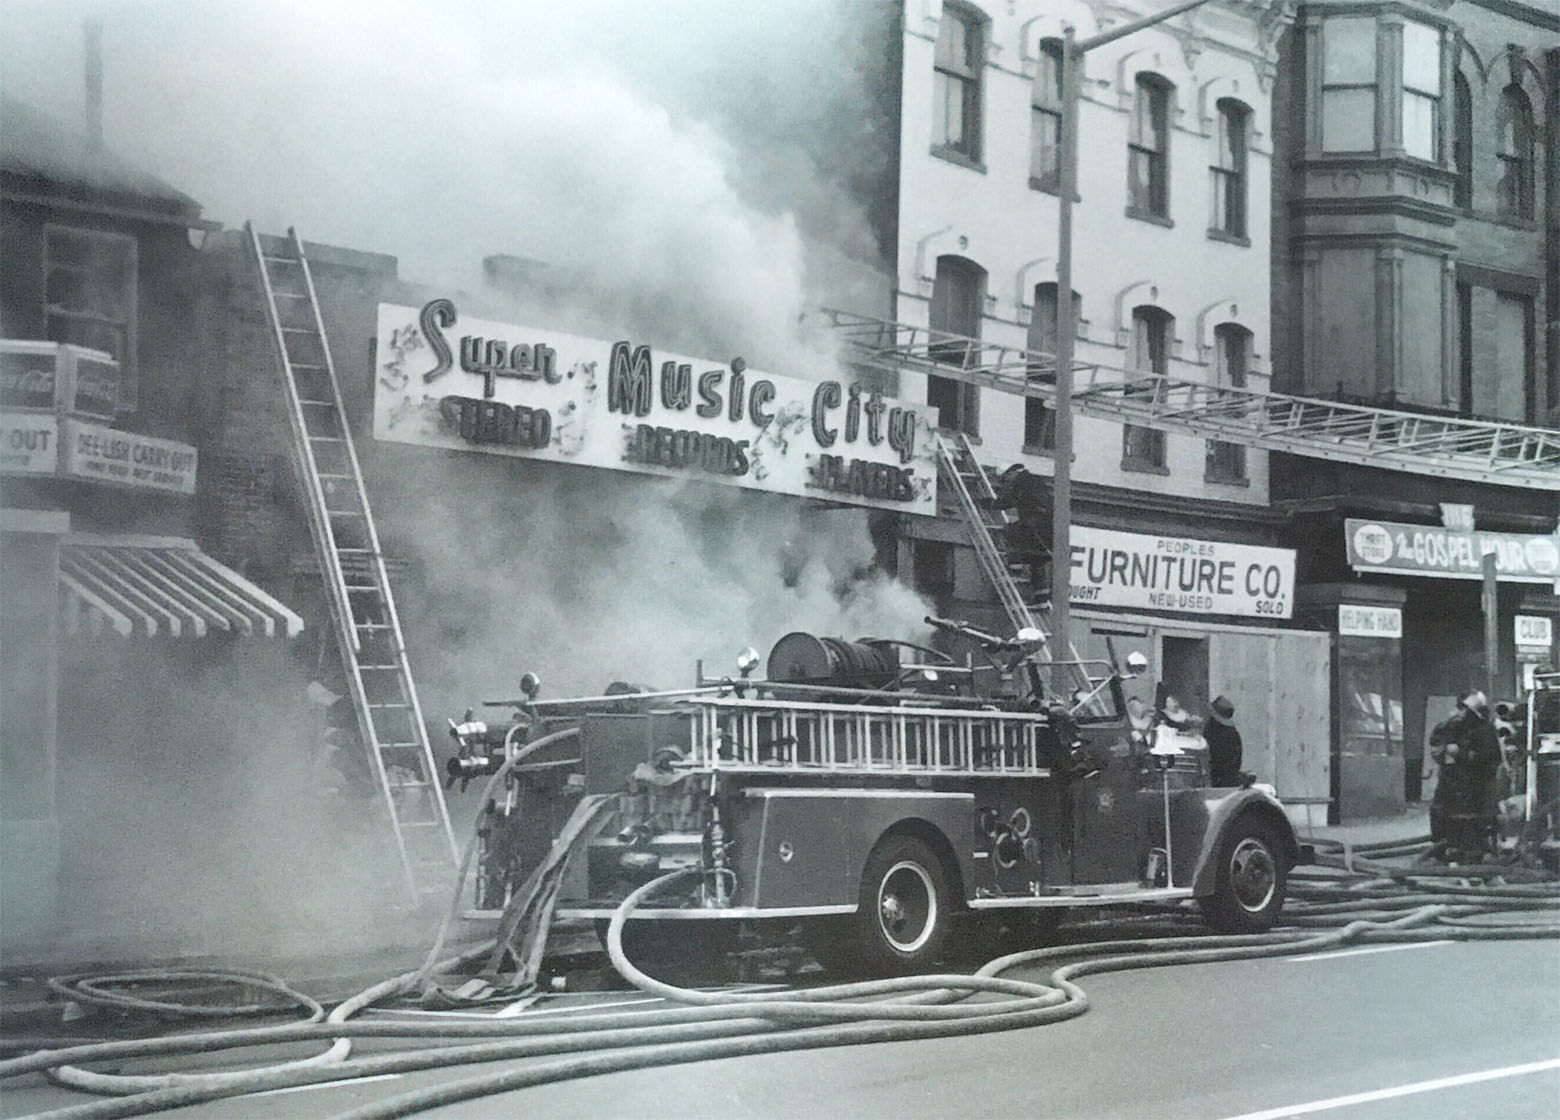 A lone truck battles a blaze on Seventh Street. (Courtesy D.C. Fire and EMS Museum)